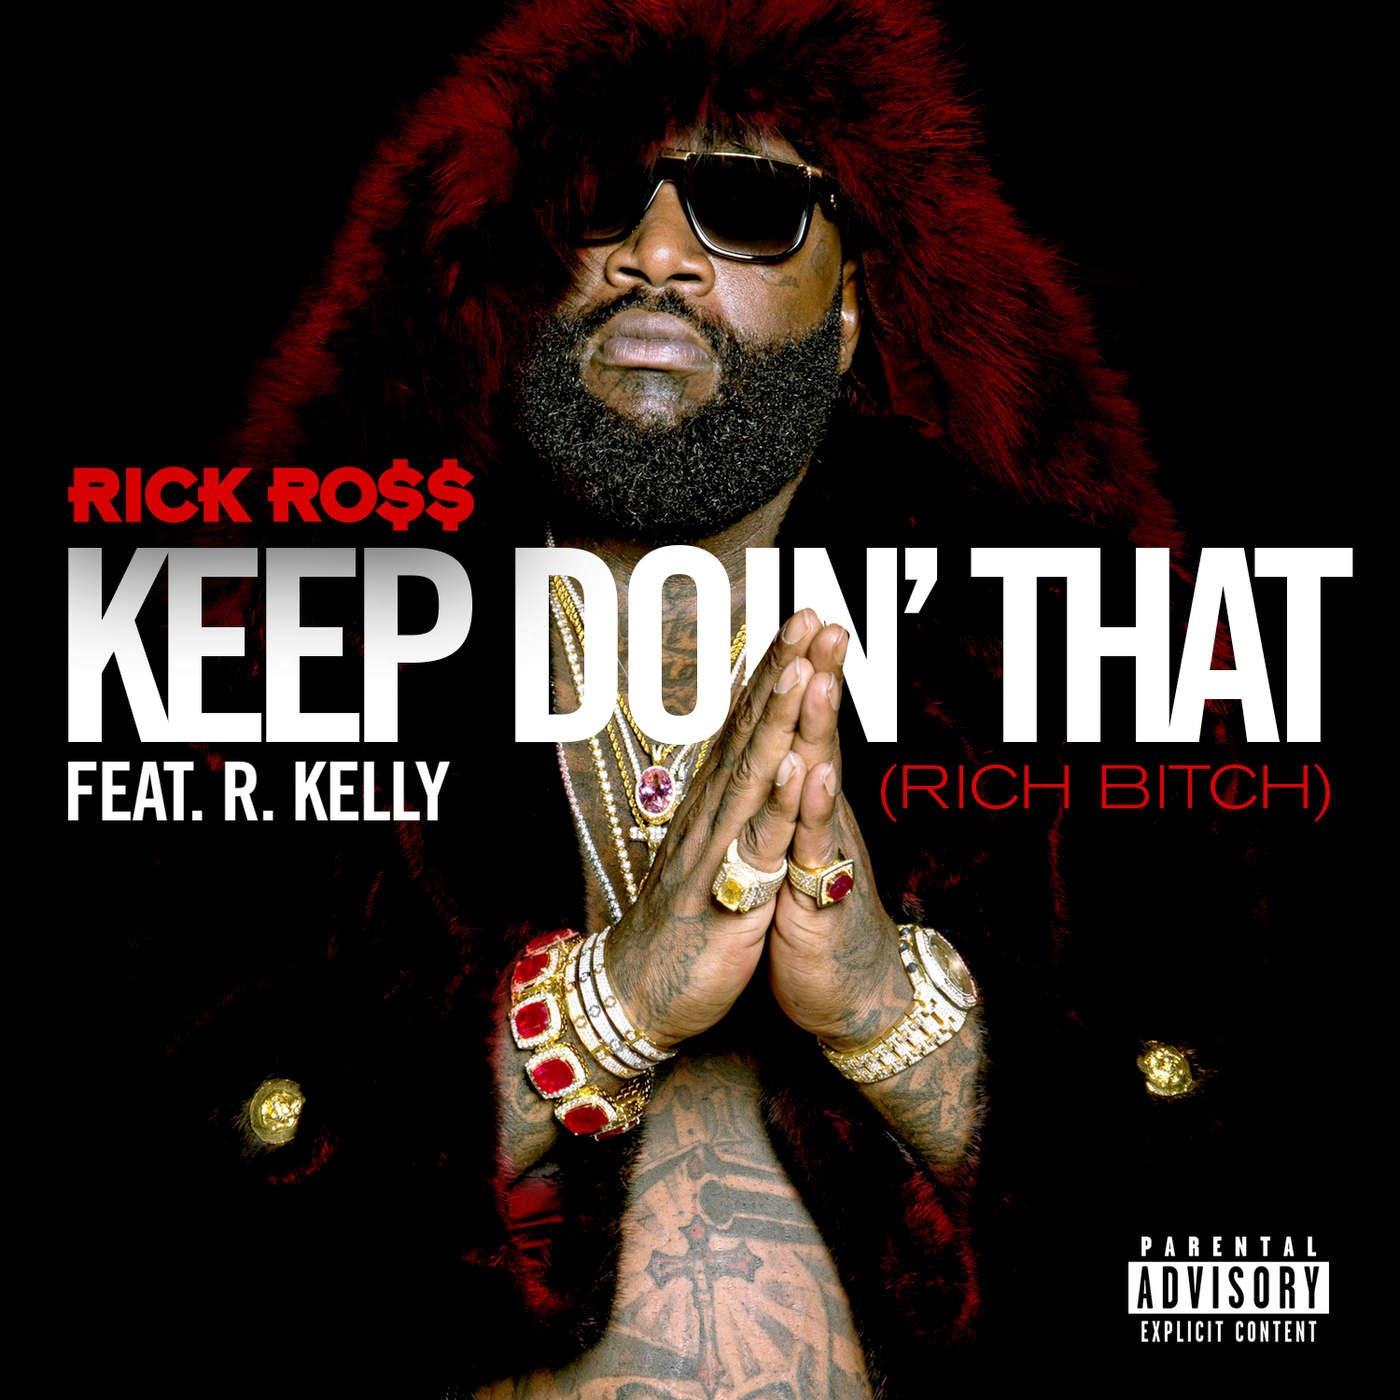 Rick Ross - Keep Doin' That (Rich Bitch) [feat. R. Kelly] - Single Cover